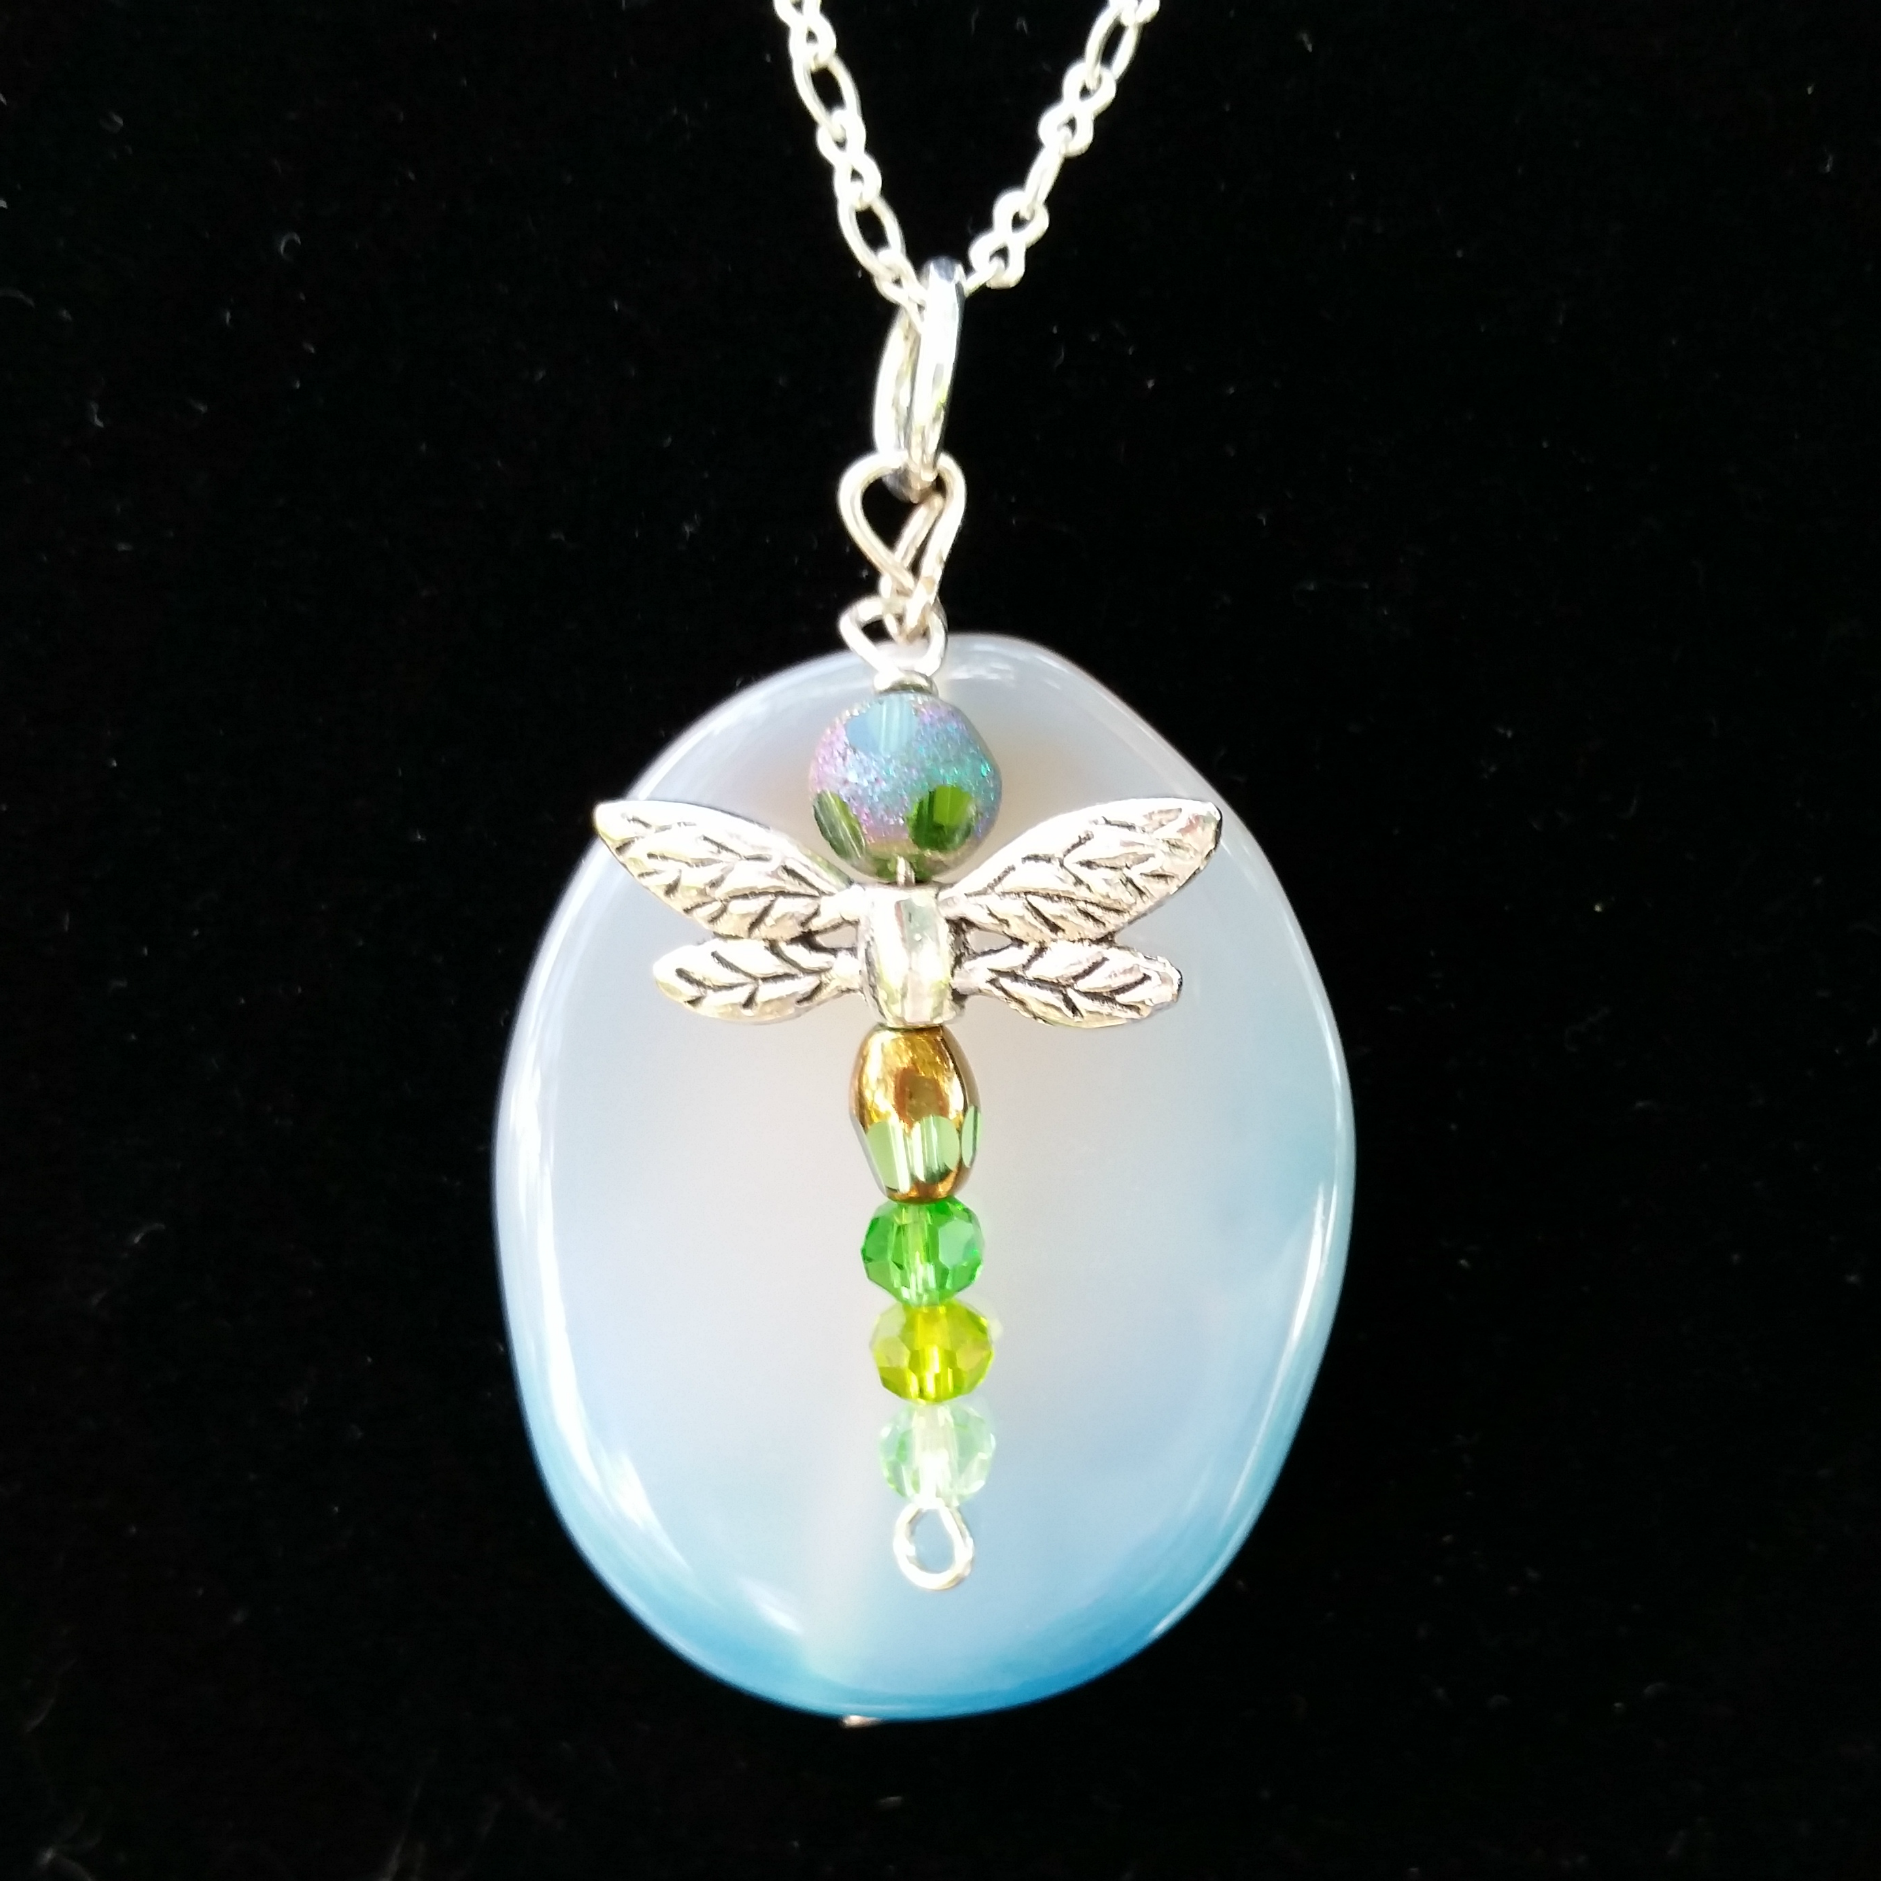 dragonfly delight designer fashion necklace db dazzling